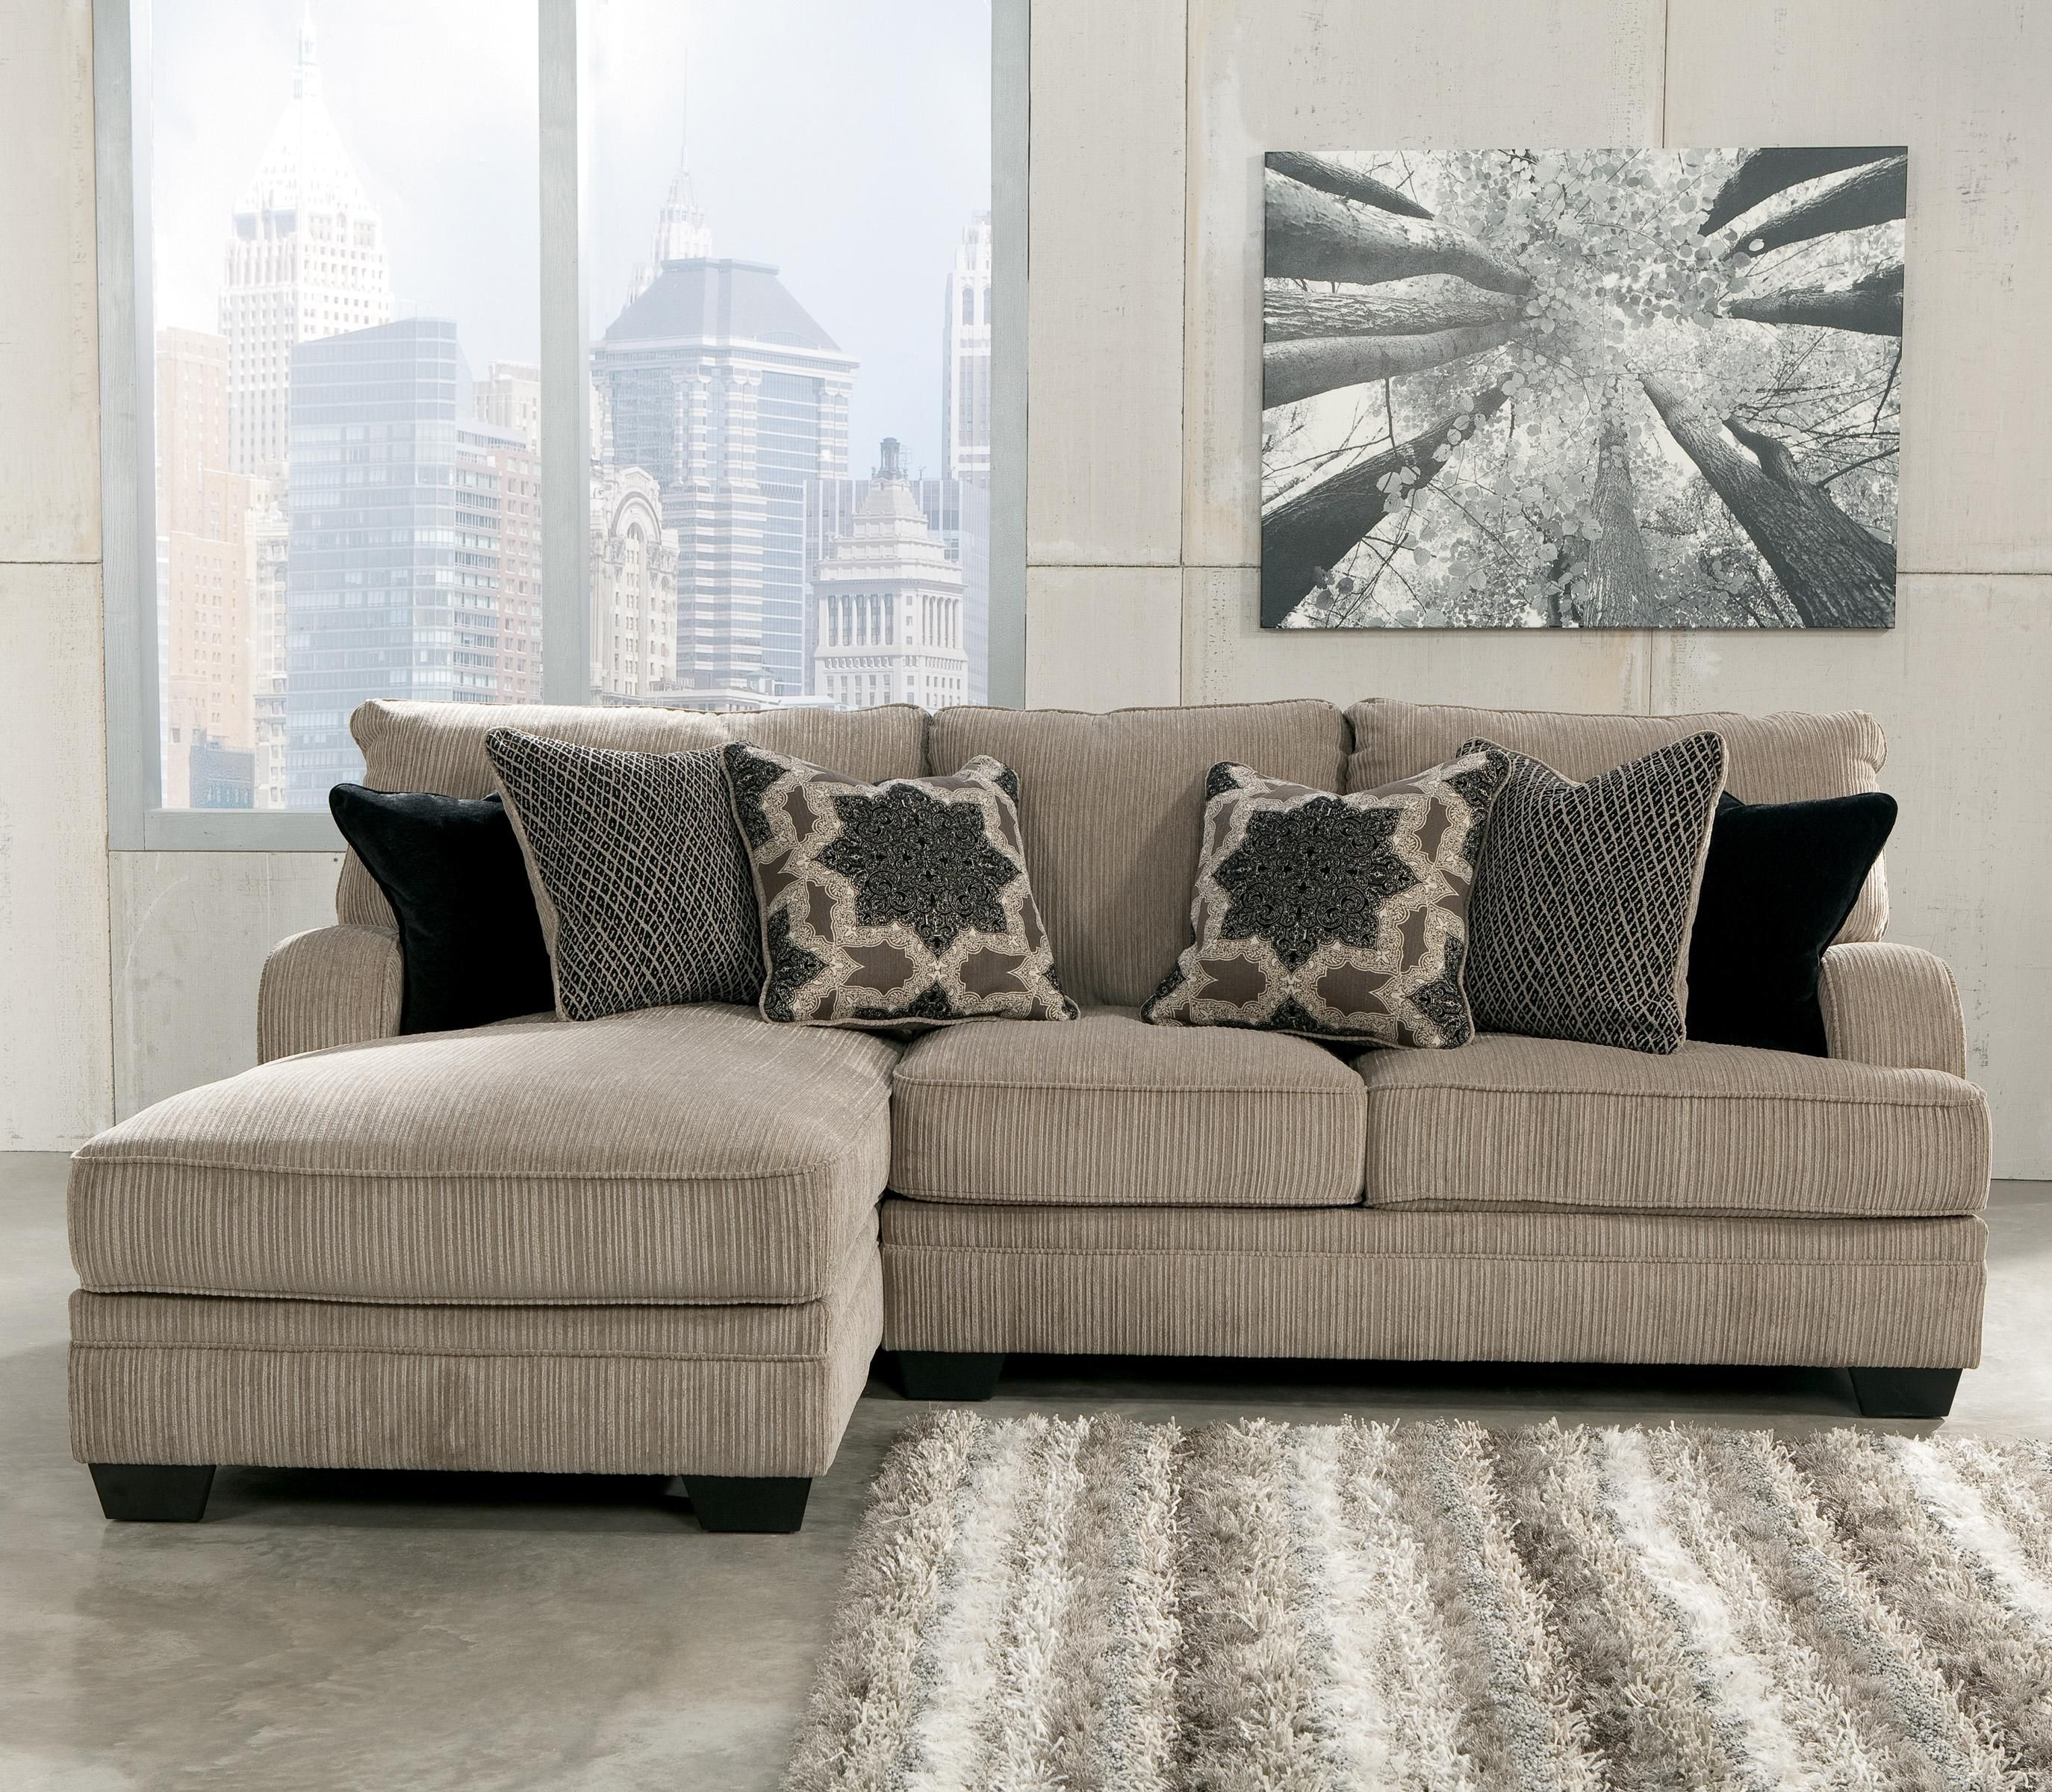 Katisha platinum 2 piece sectional with left chaise by for Ashley chaise lounge sofa